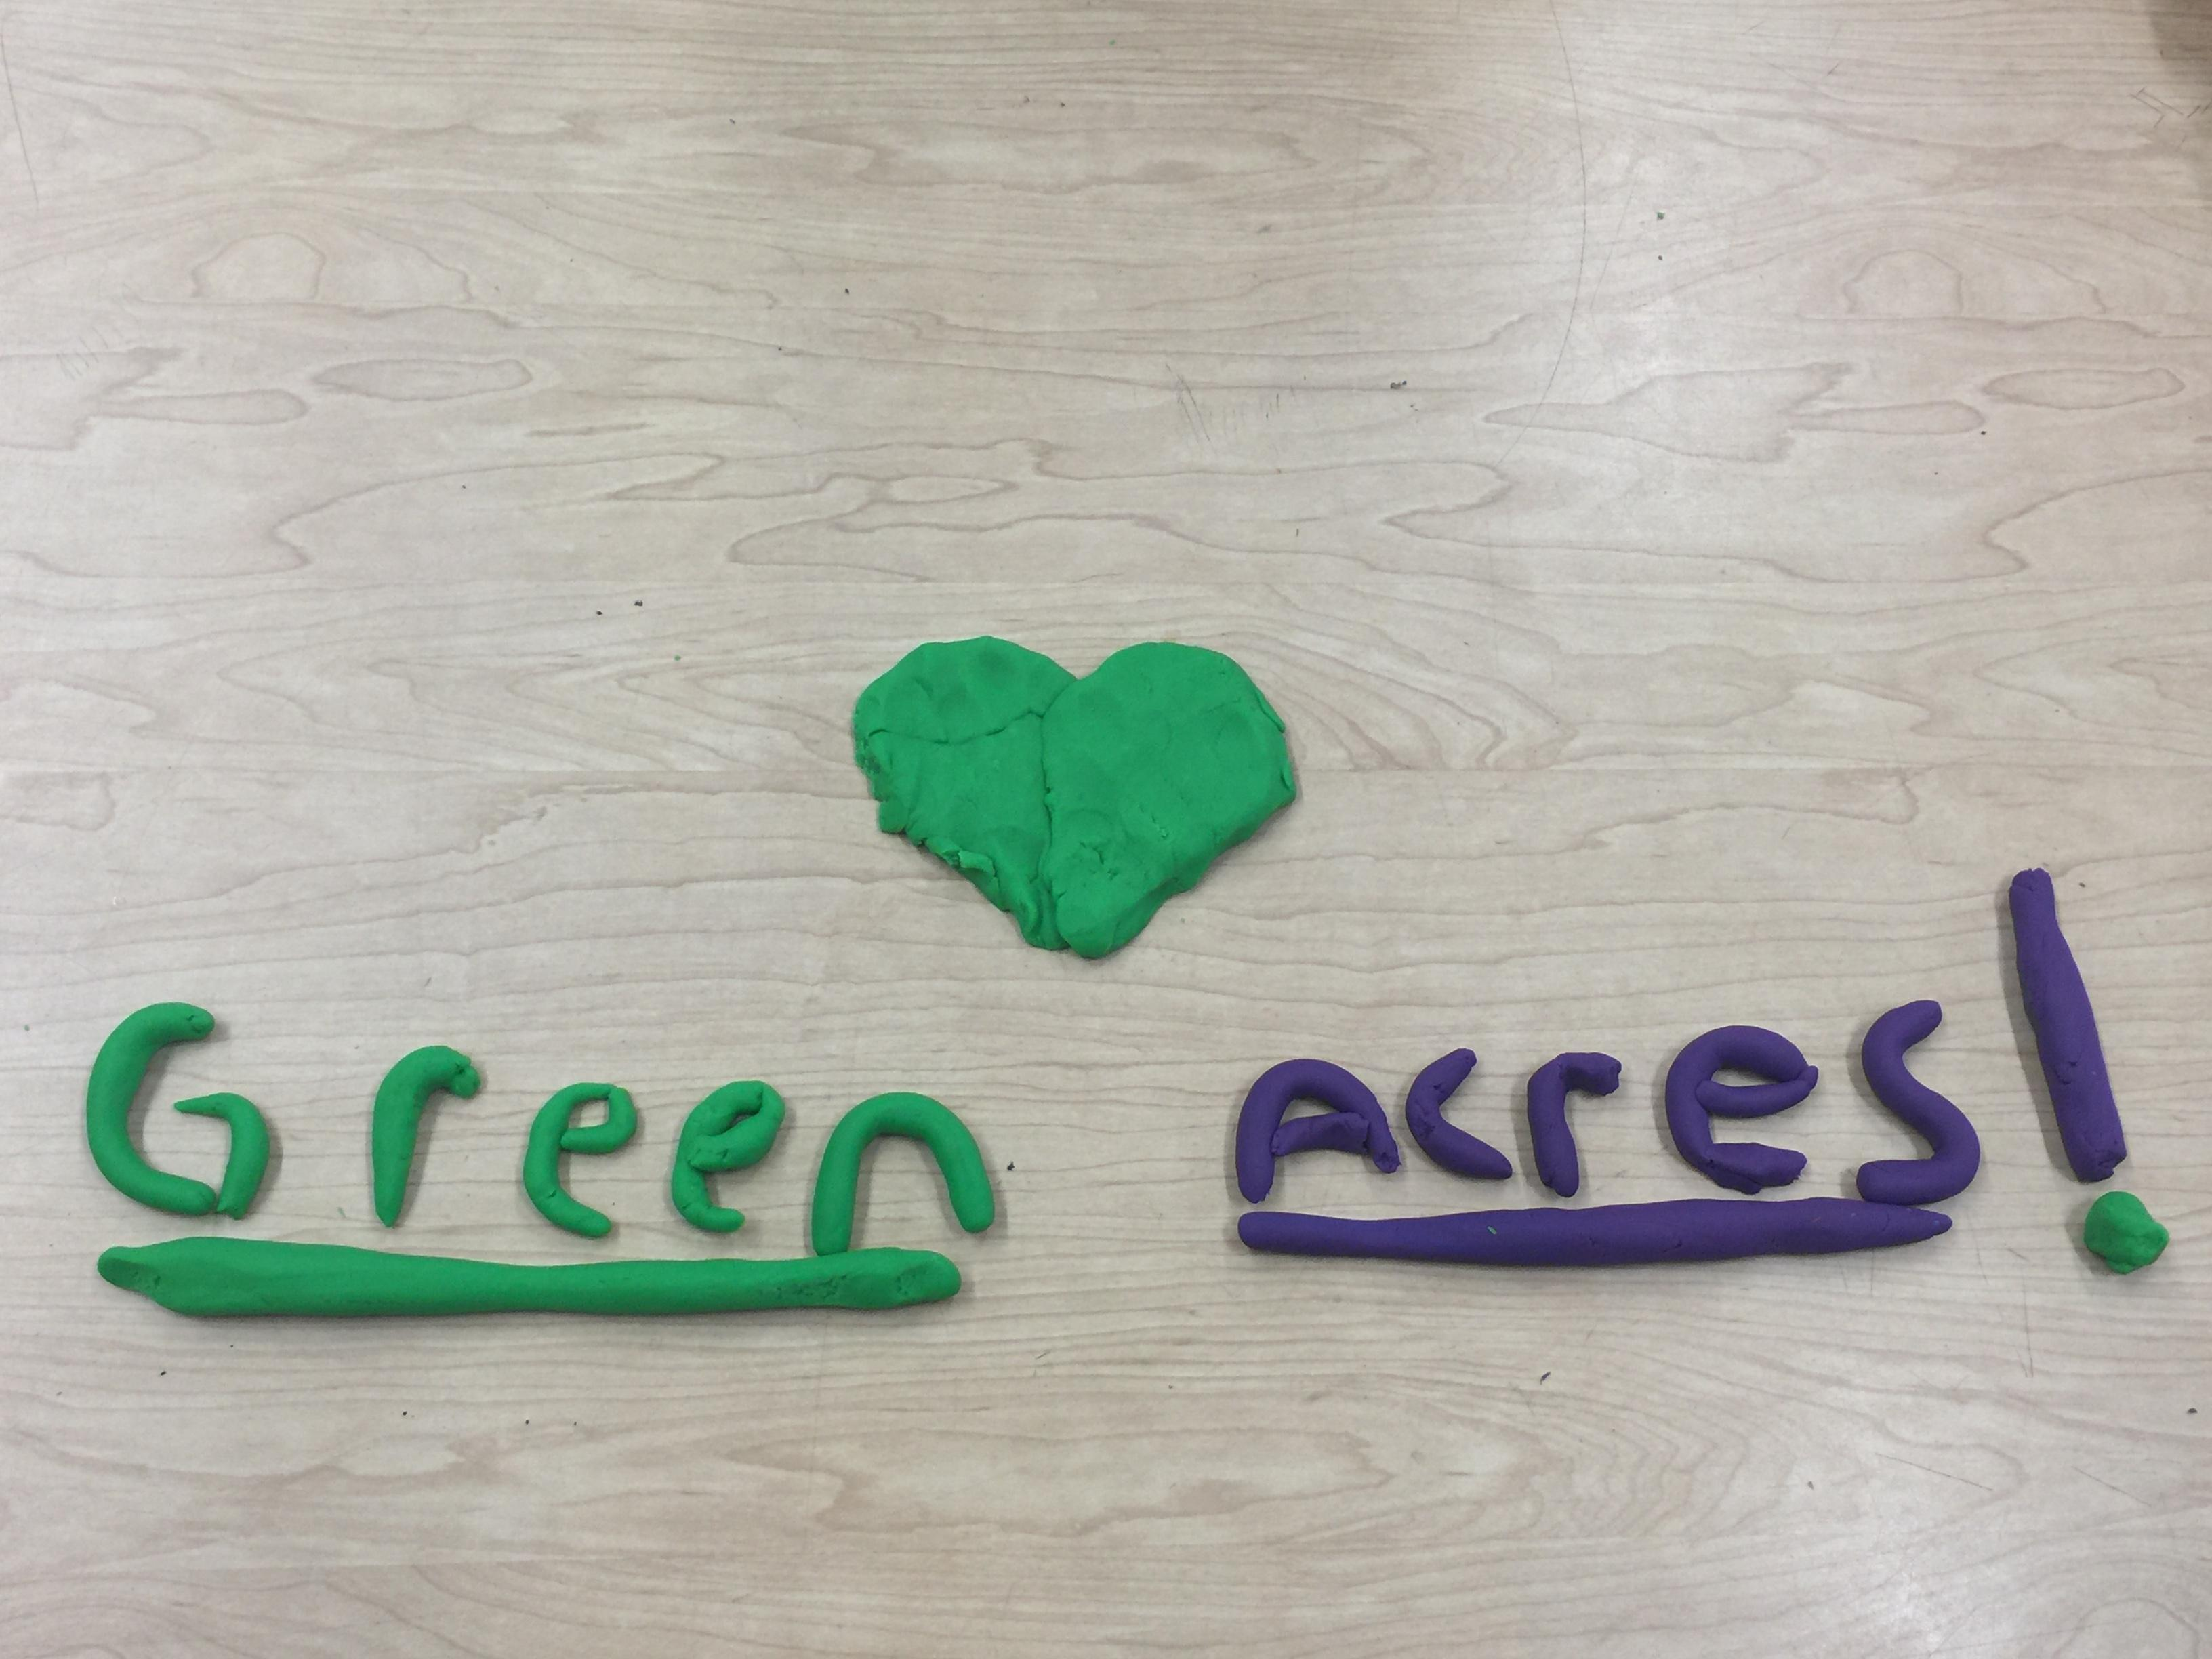 We love Green Acres!